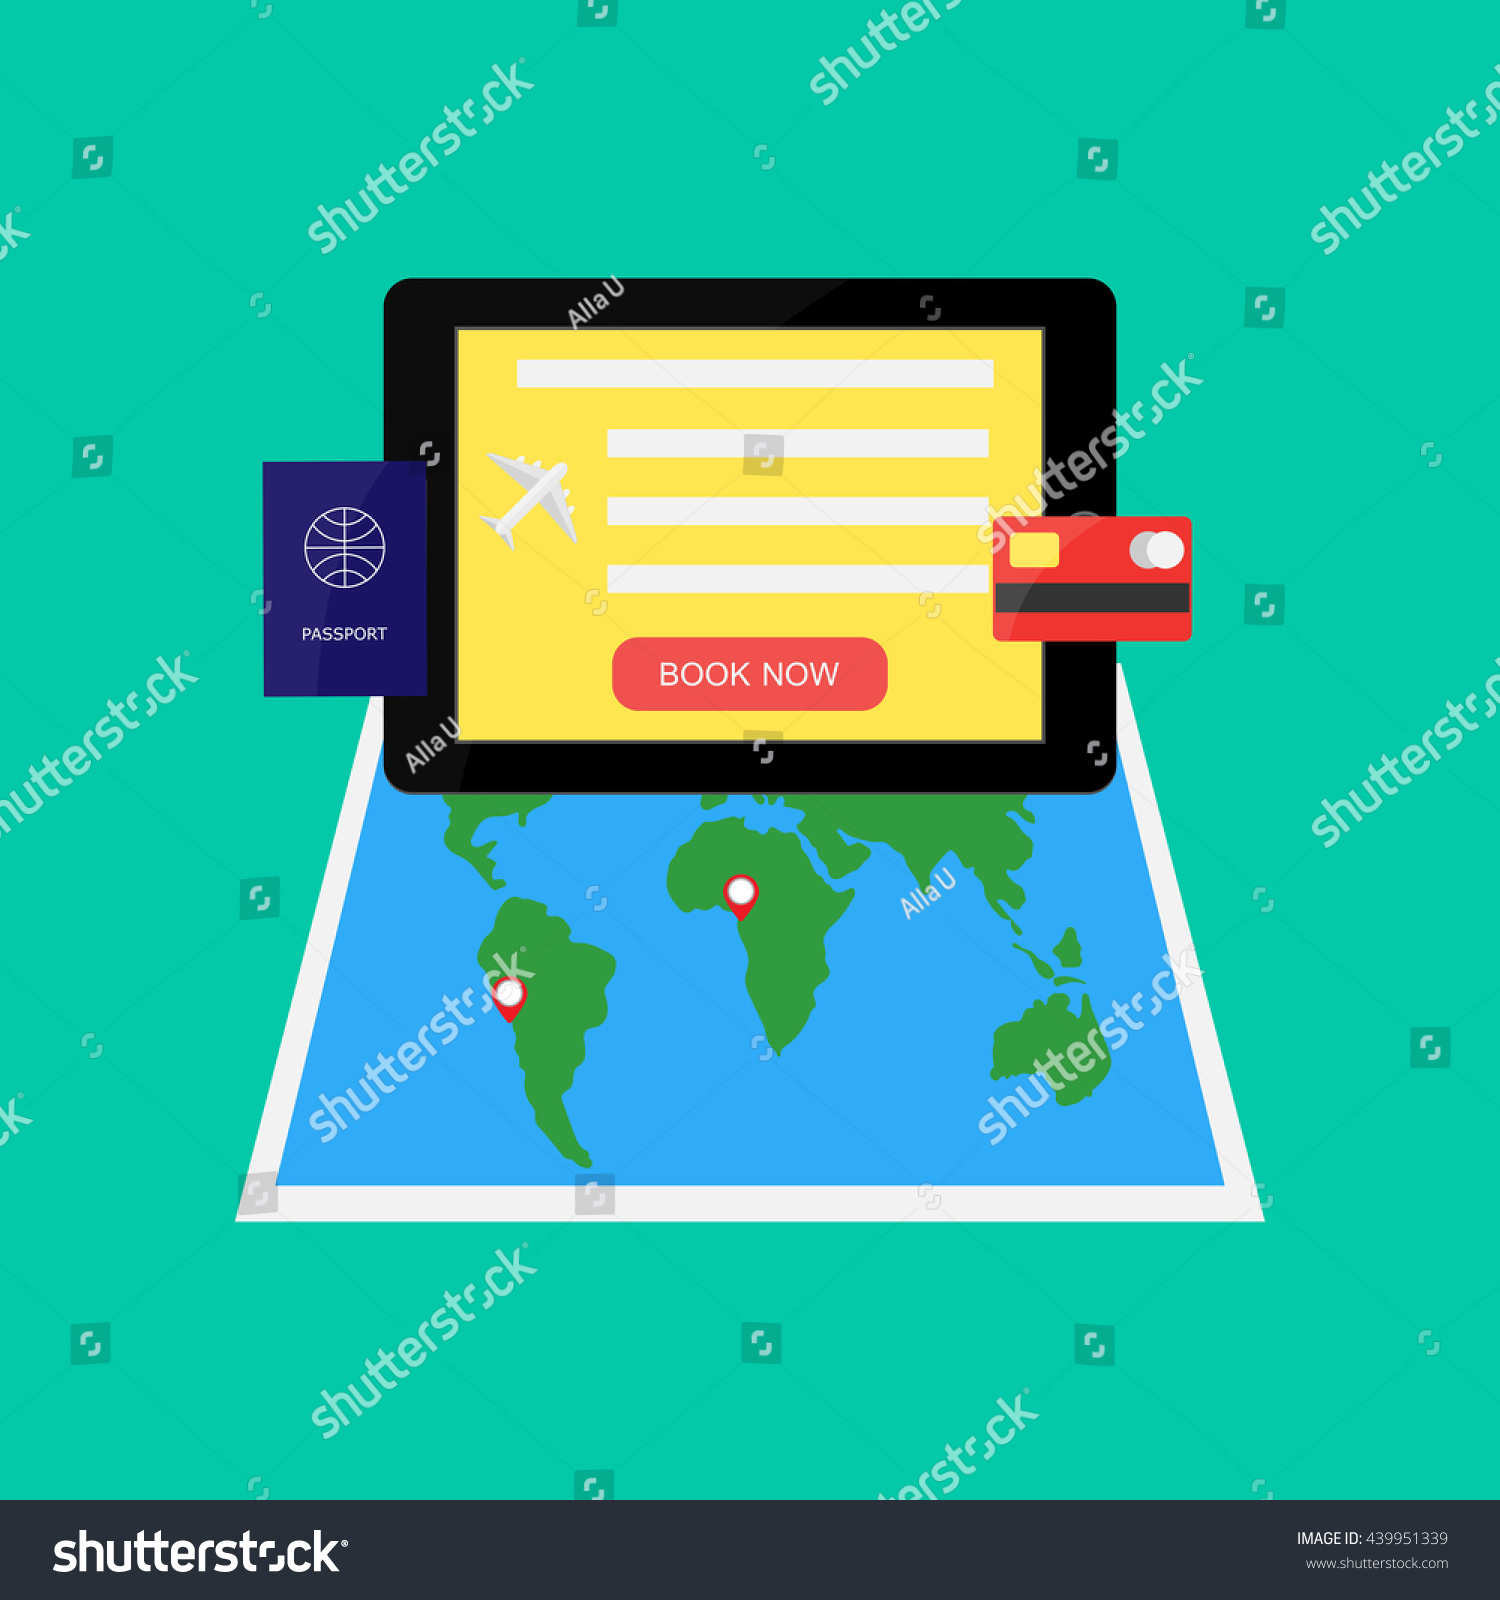 Tablet World Map Passport Bank Card Stock Vector (Royalty Free